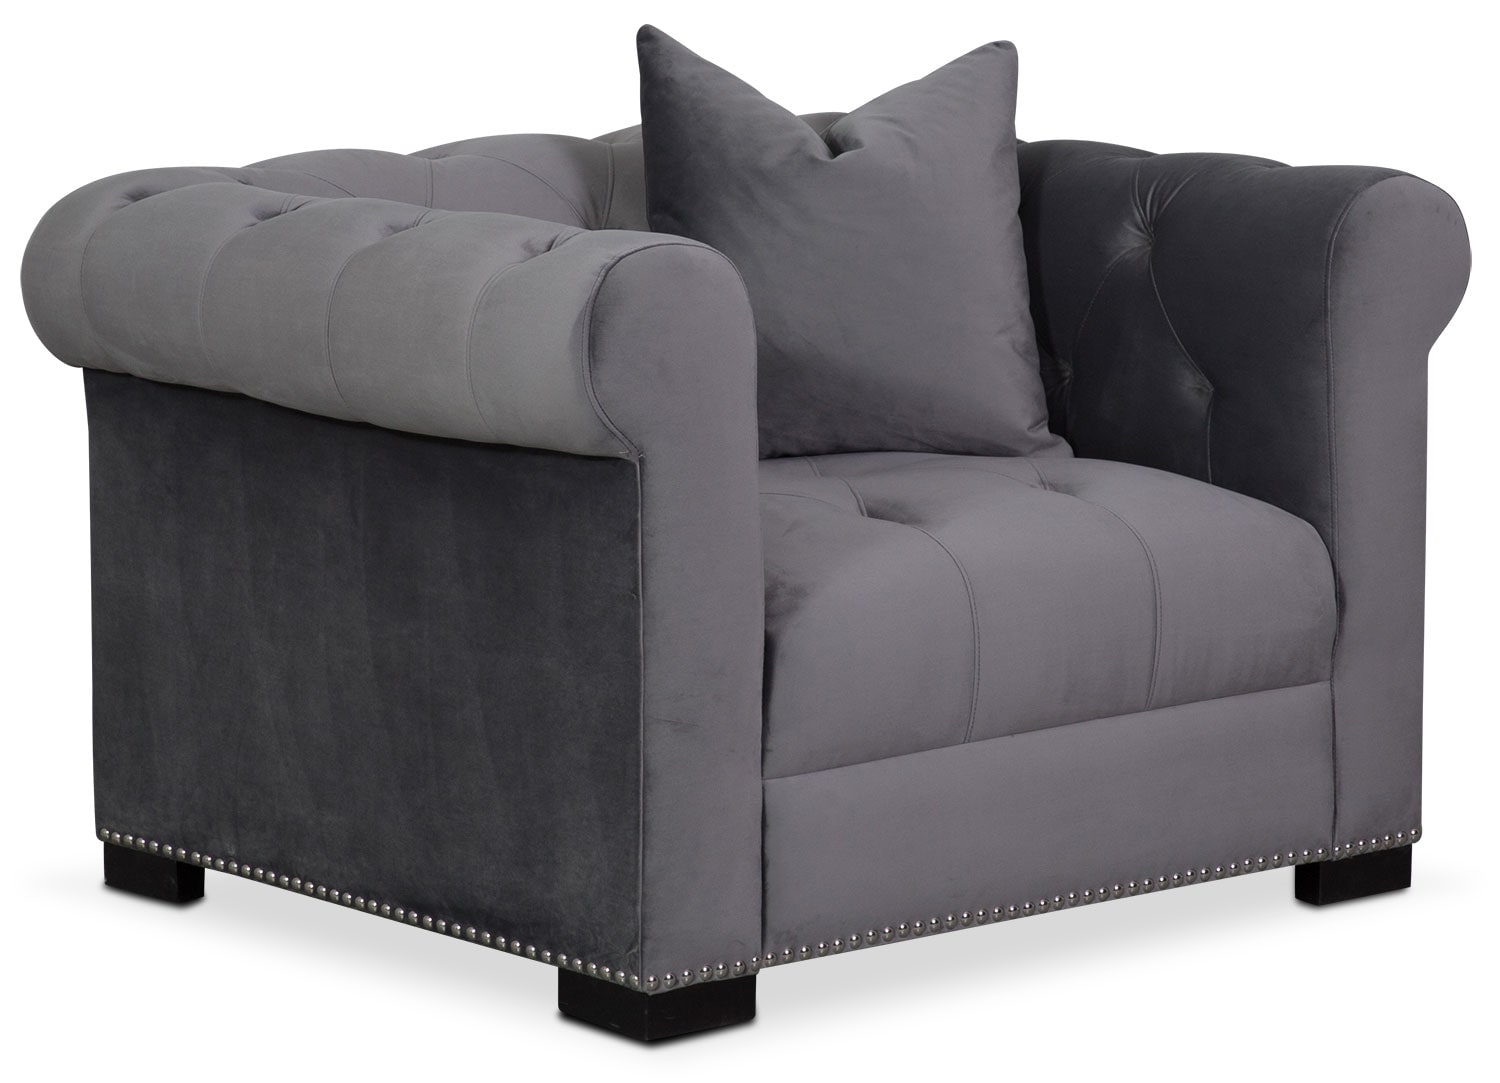 Couture Chair - Gray